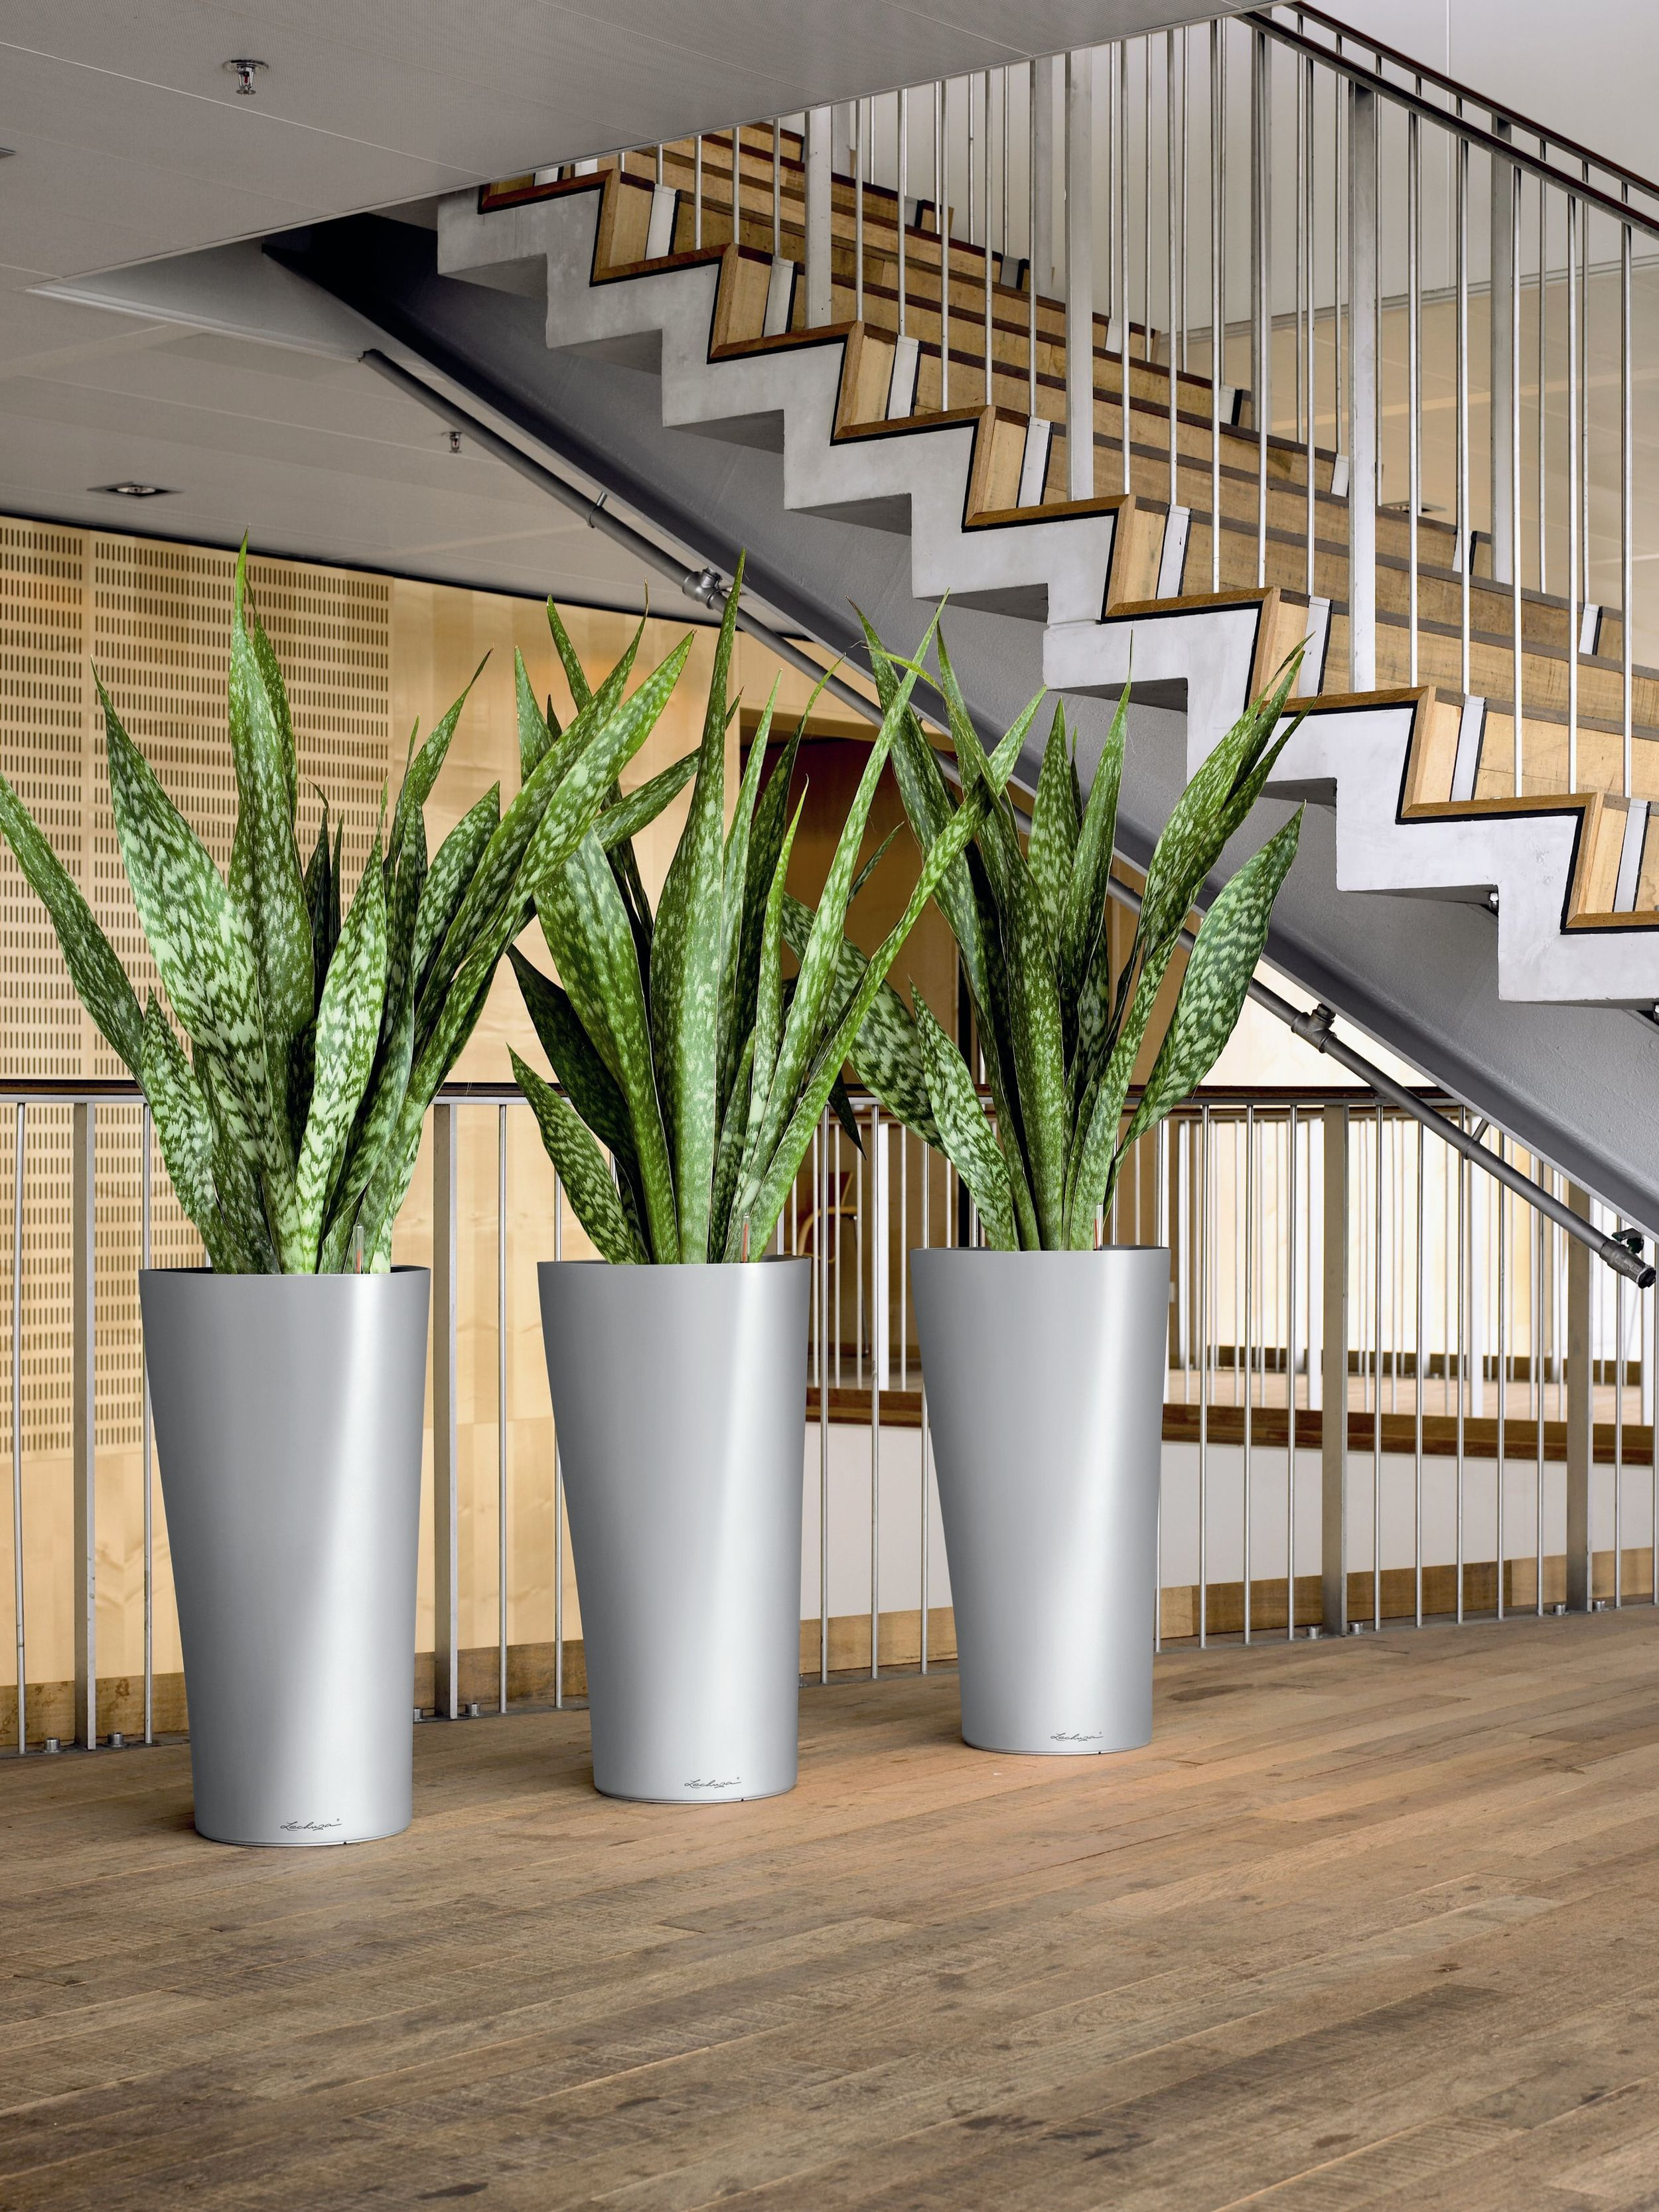 Delta 40 Silver - 3 planters at staircase.jpg